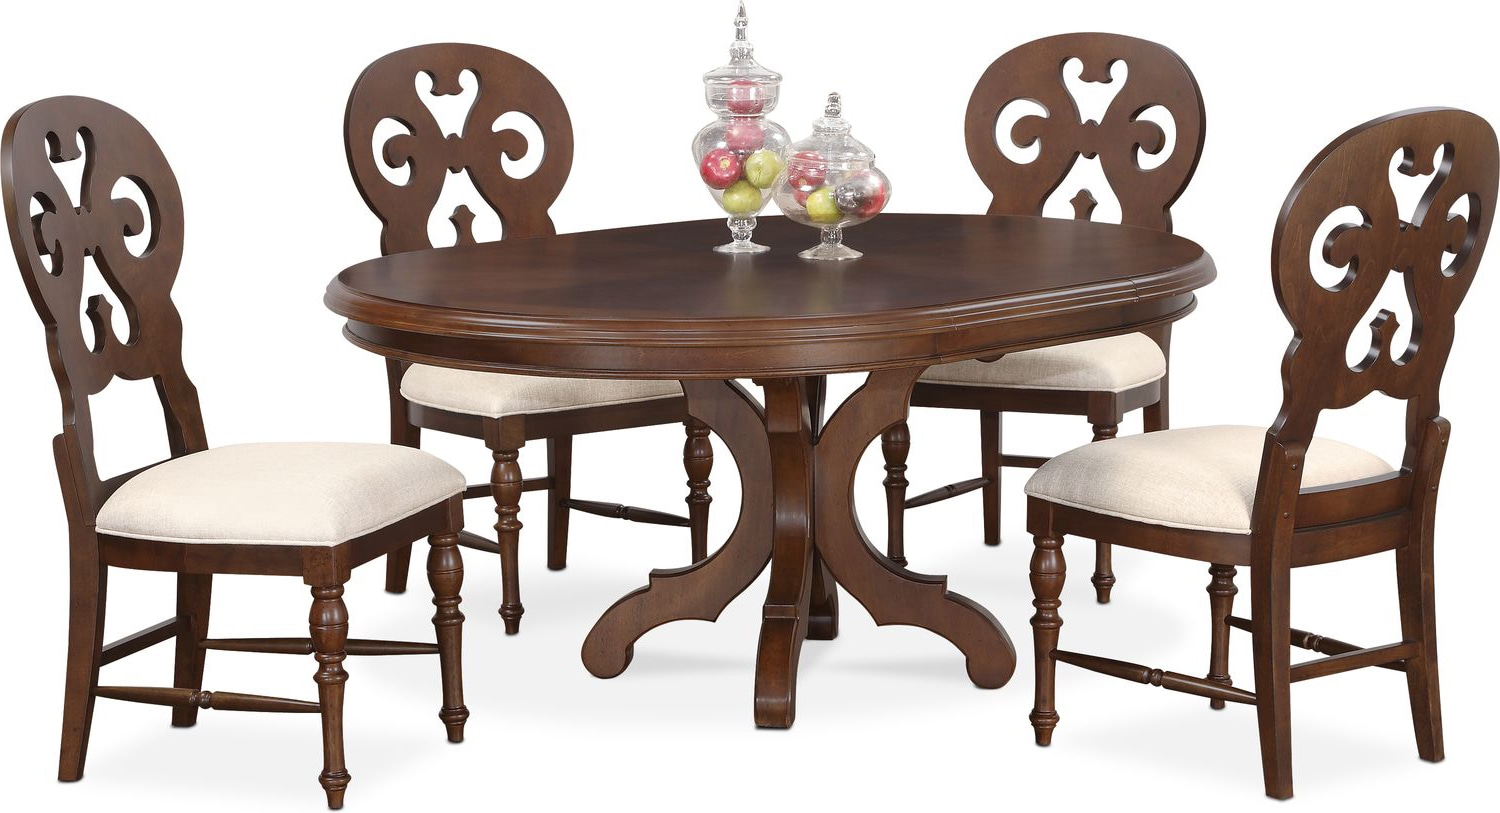 Circular Dining Table And Chairs: Charleston Round Dining Table And 4 Scroll-Back Side